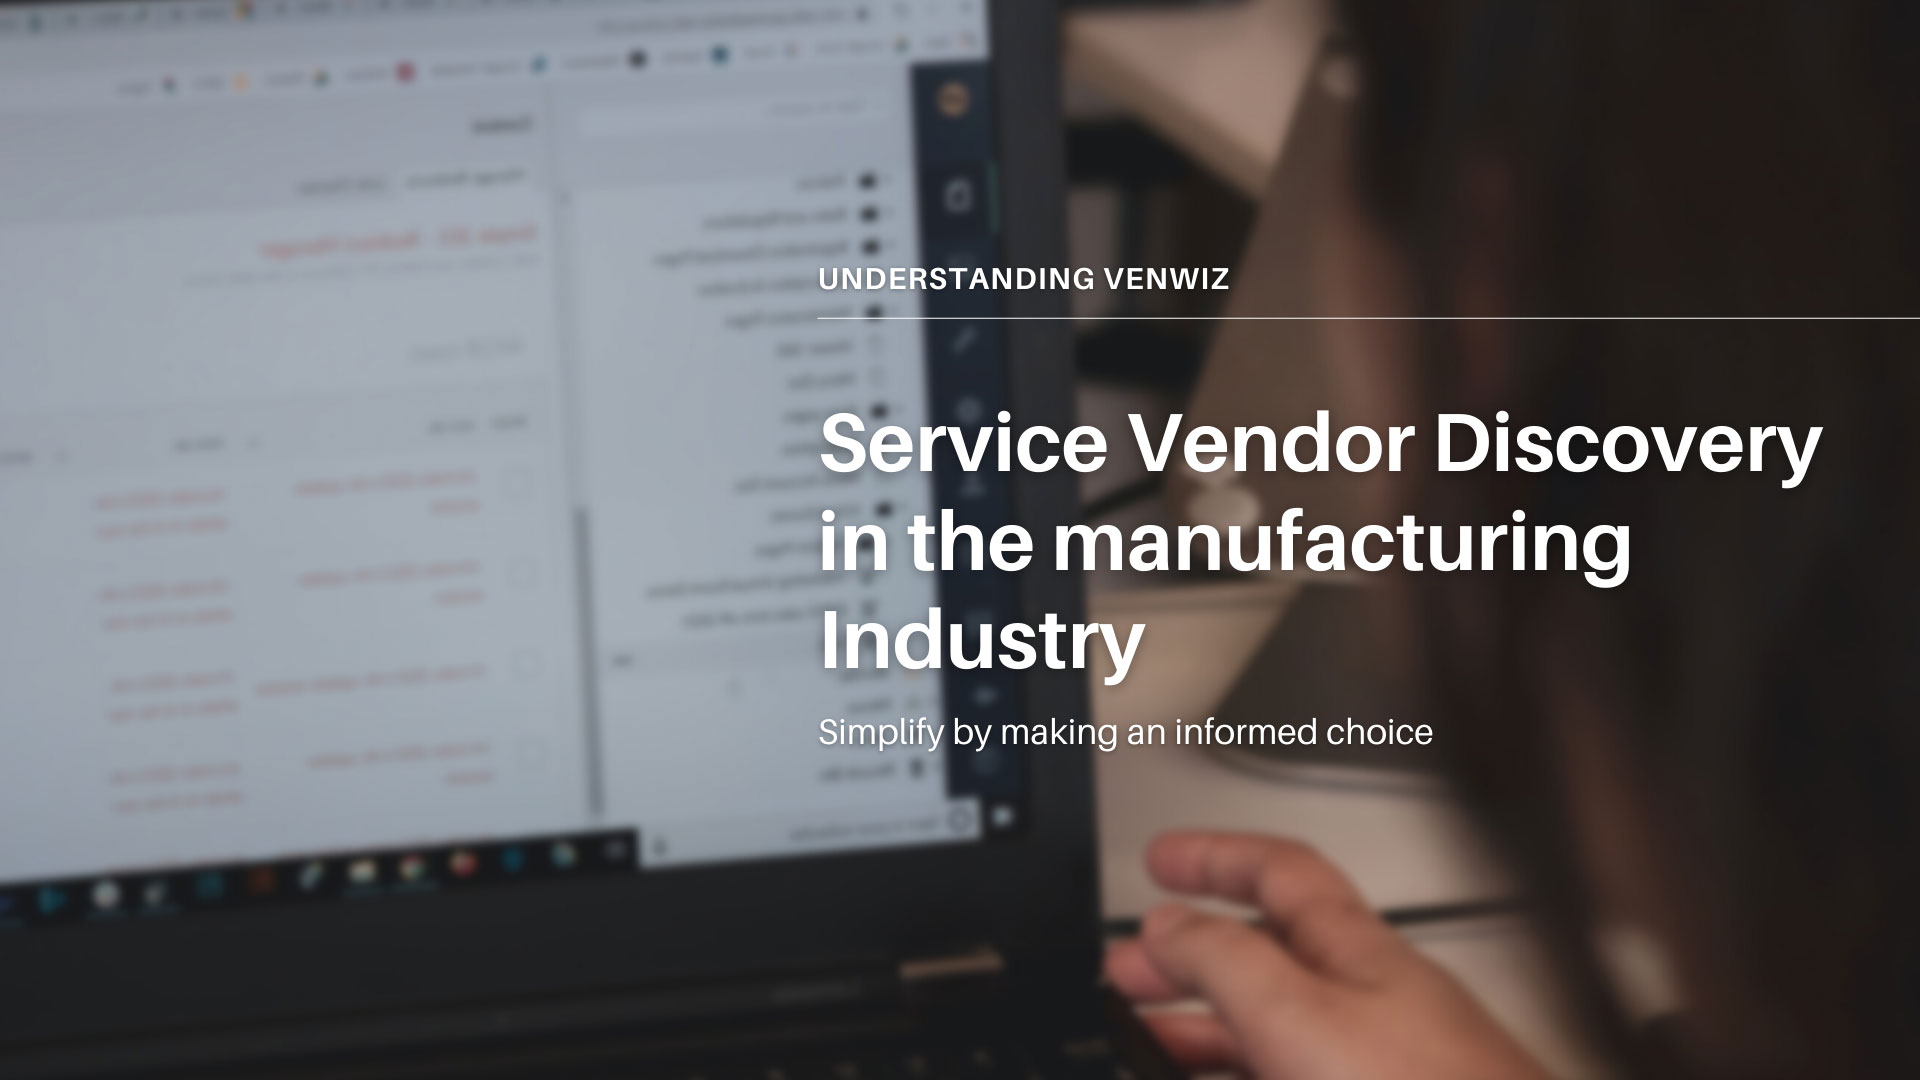 Service Vendor Discovery in the manufacturing Industry – Simplify by making an informed choice